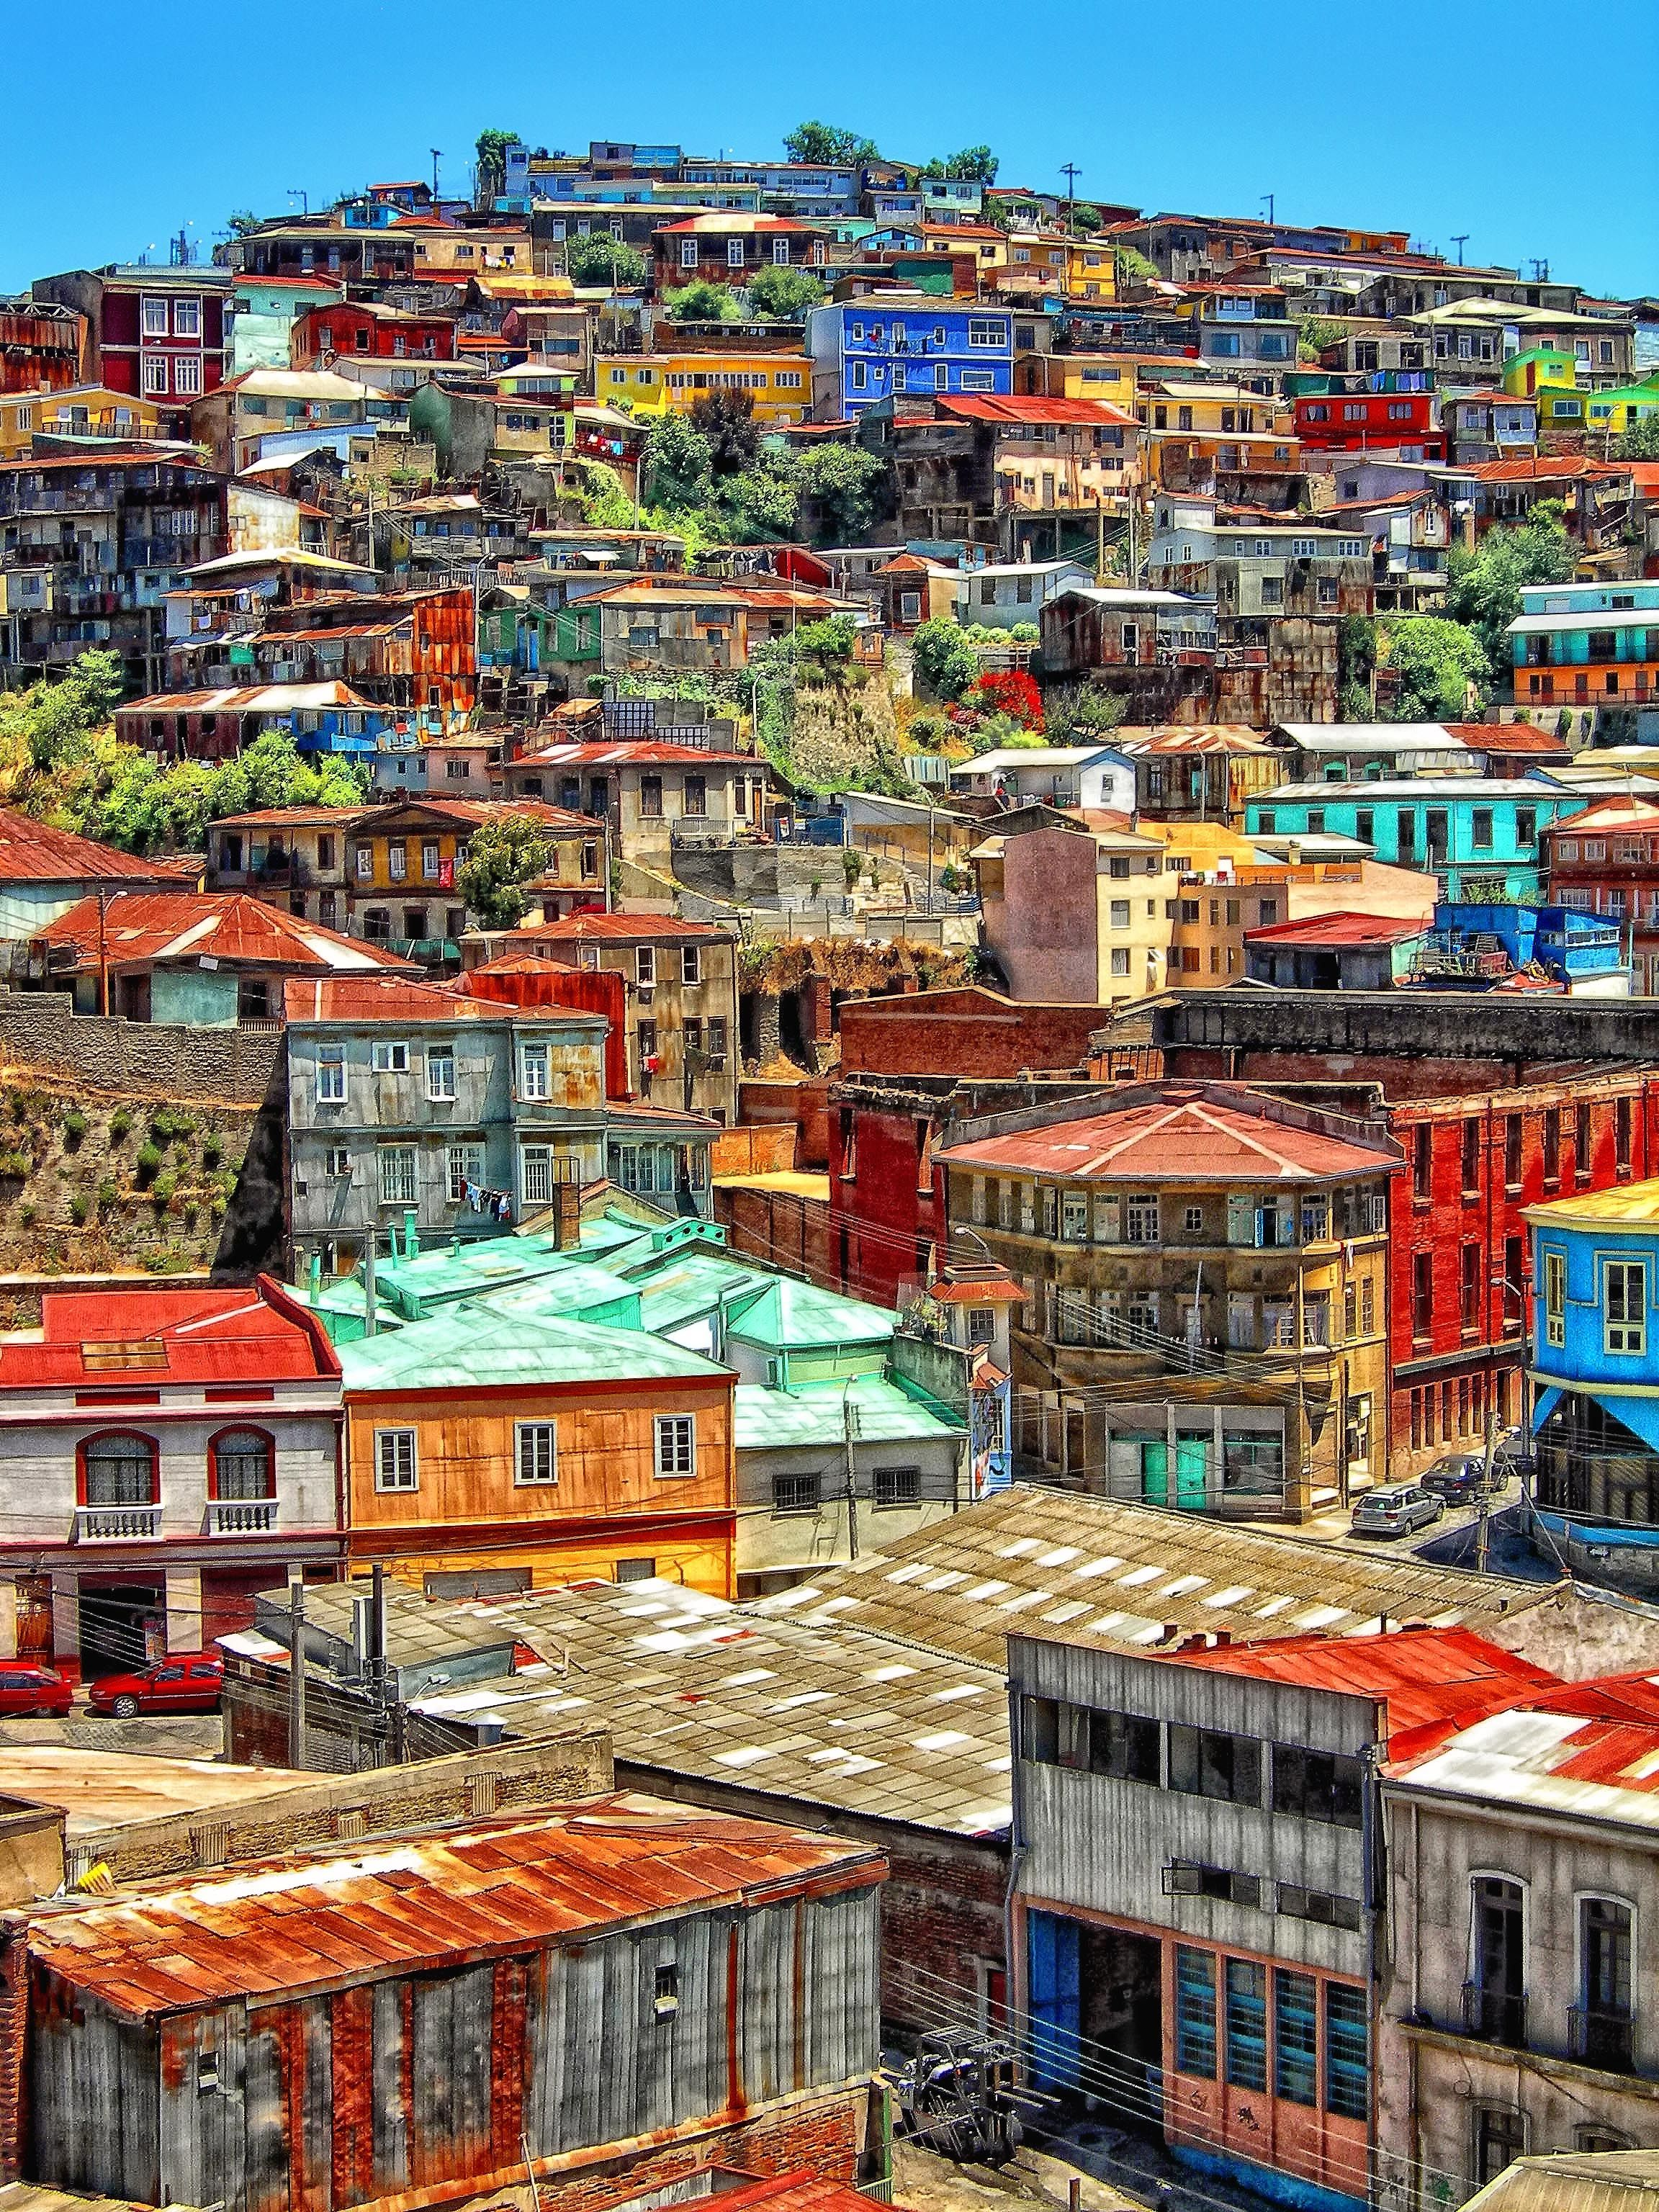 The Best Things to Do in Valparaiso, Chile